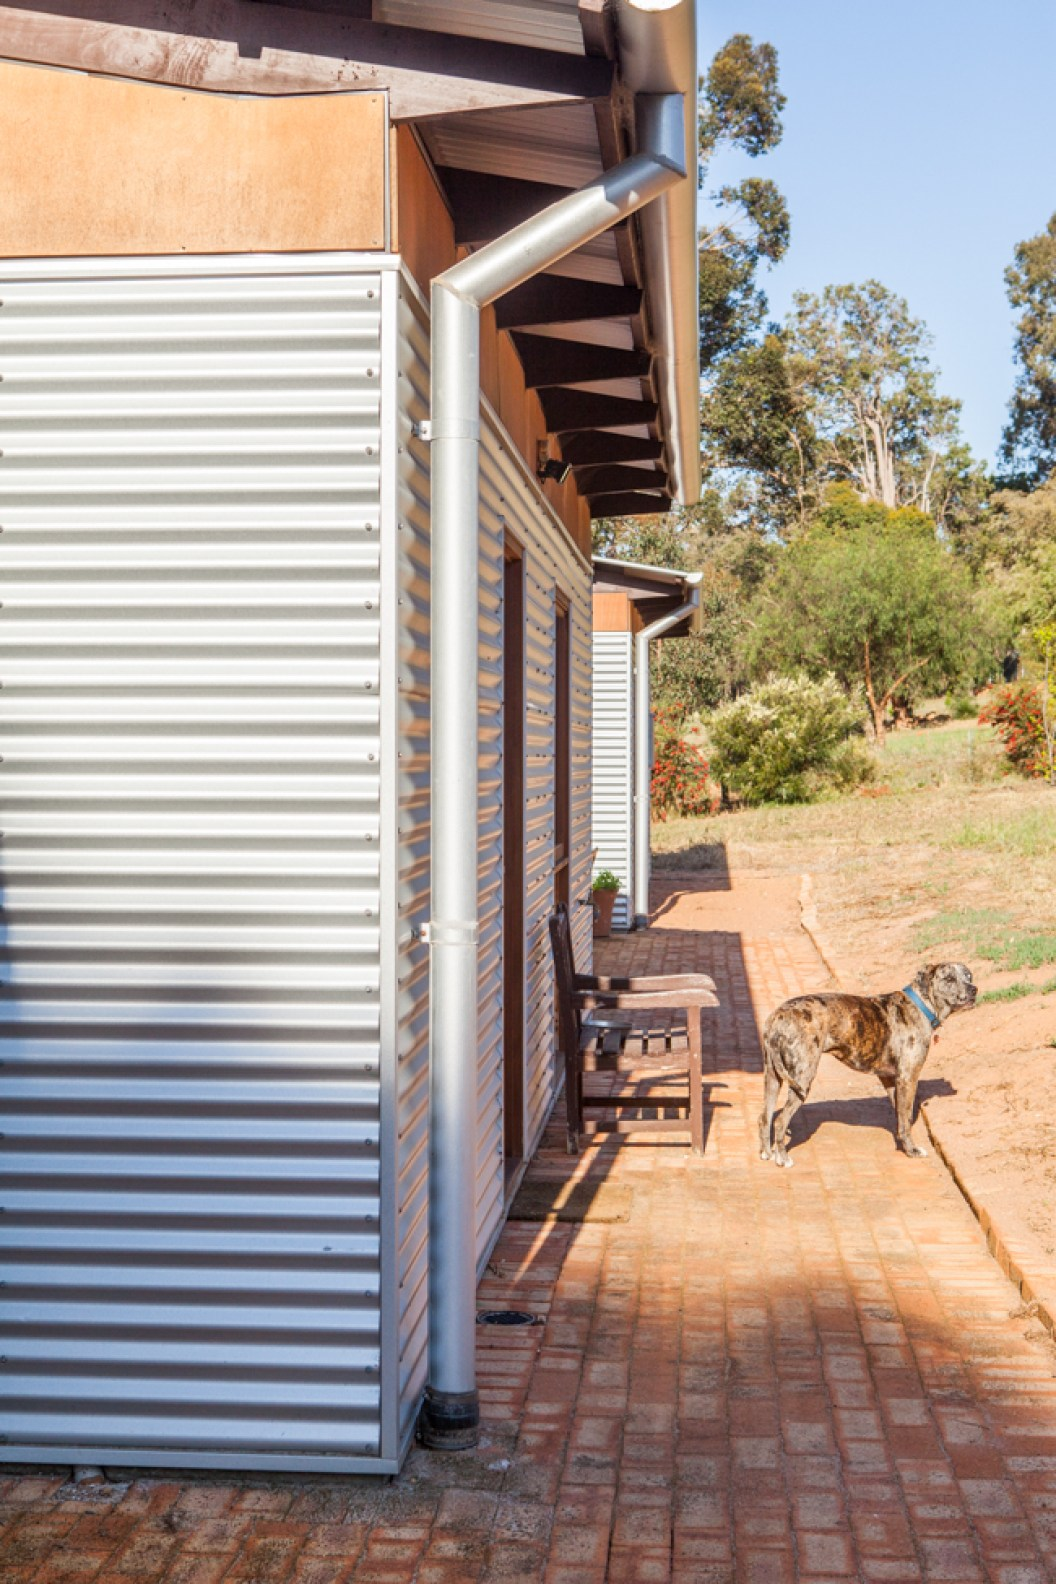 solar-passive-home-house-Perth-Australian-design-eco-friendly-shed-house-country-House-Nerd-Perth-design